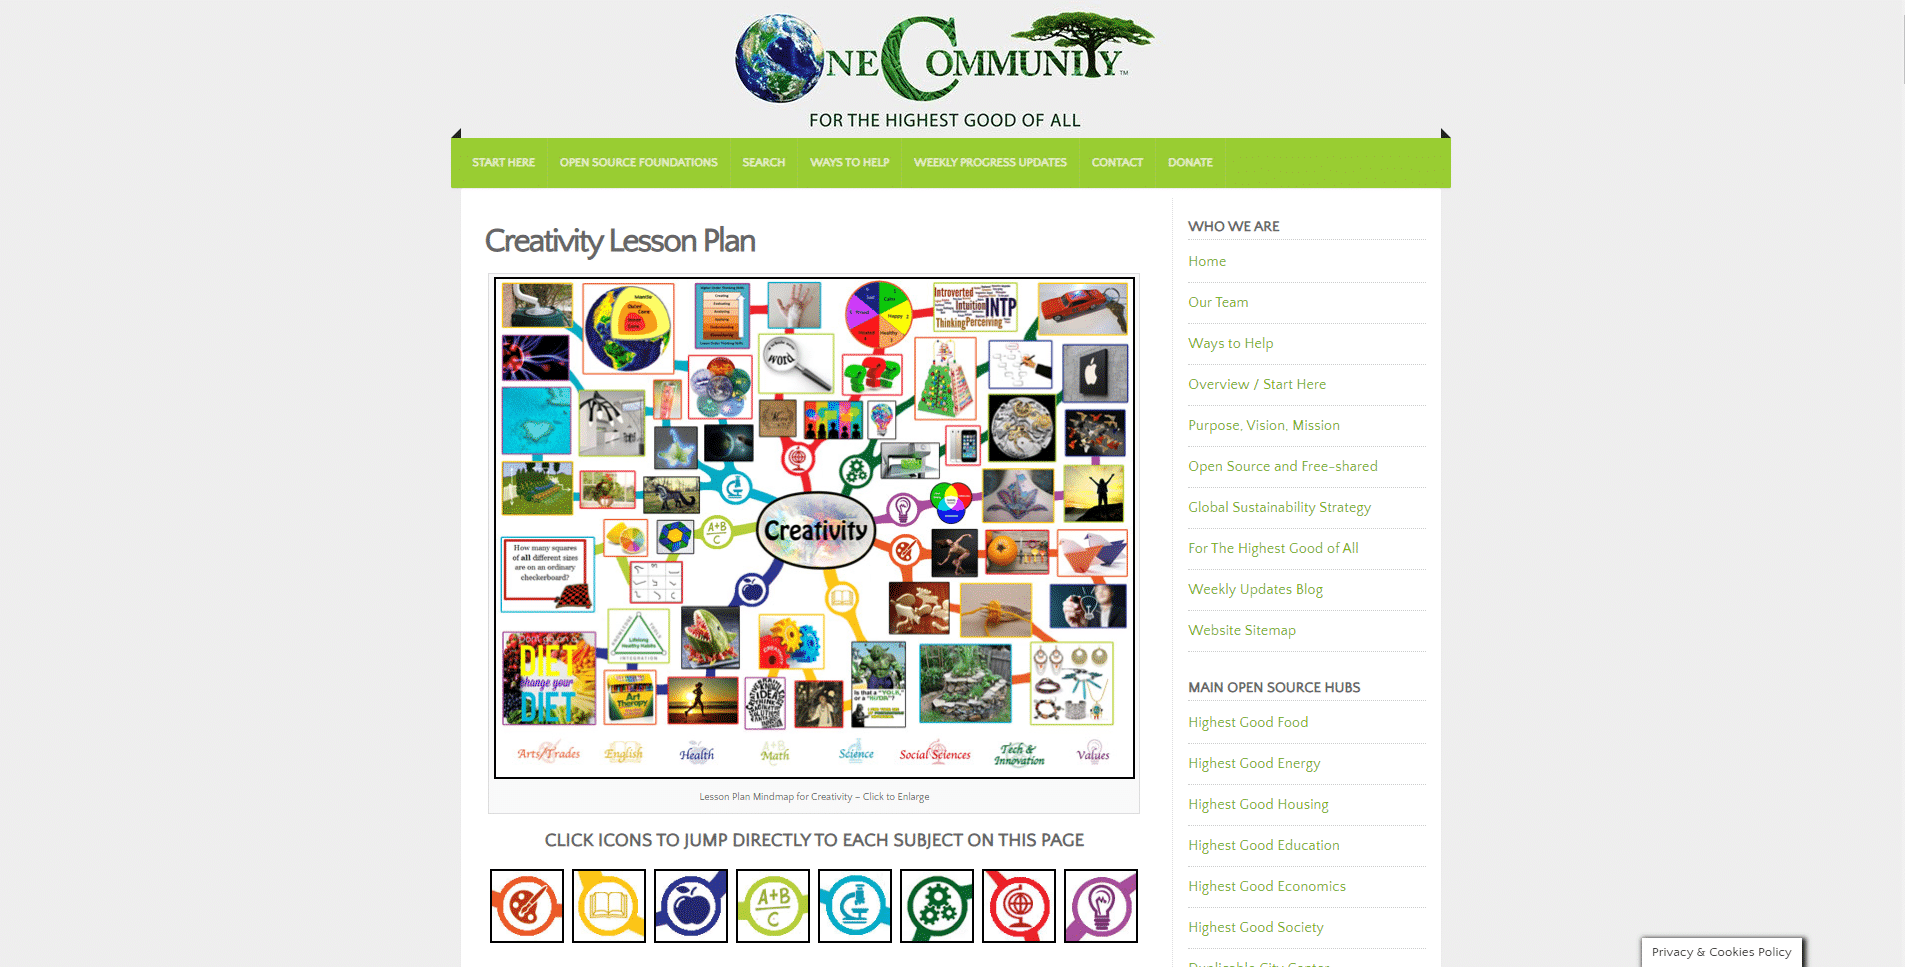 One Community Global Learn Creativity Lessons Online